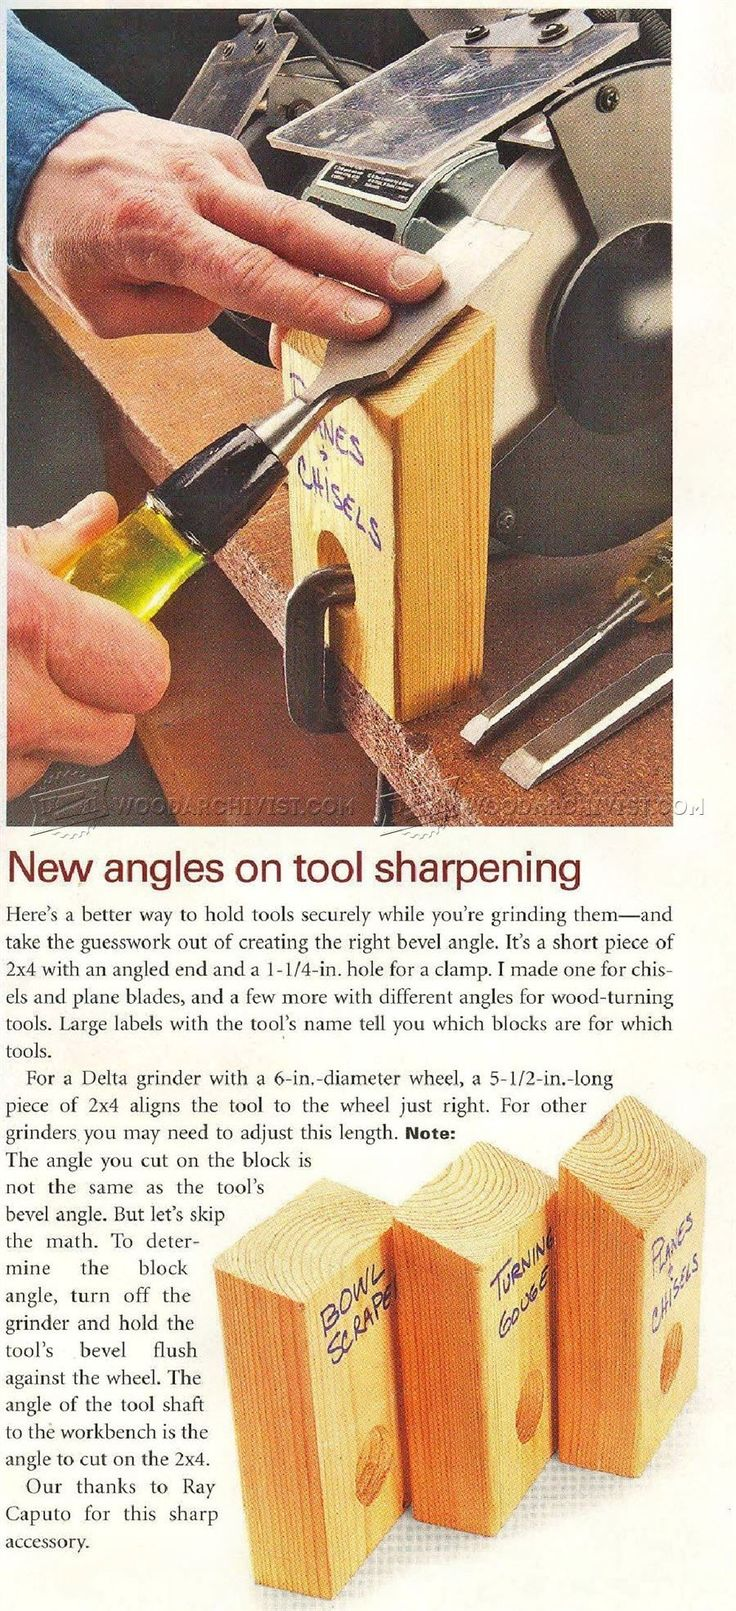 New Angles on Tool Sharpening - Sharpening